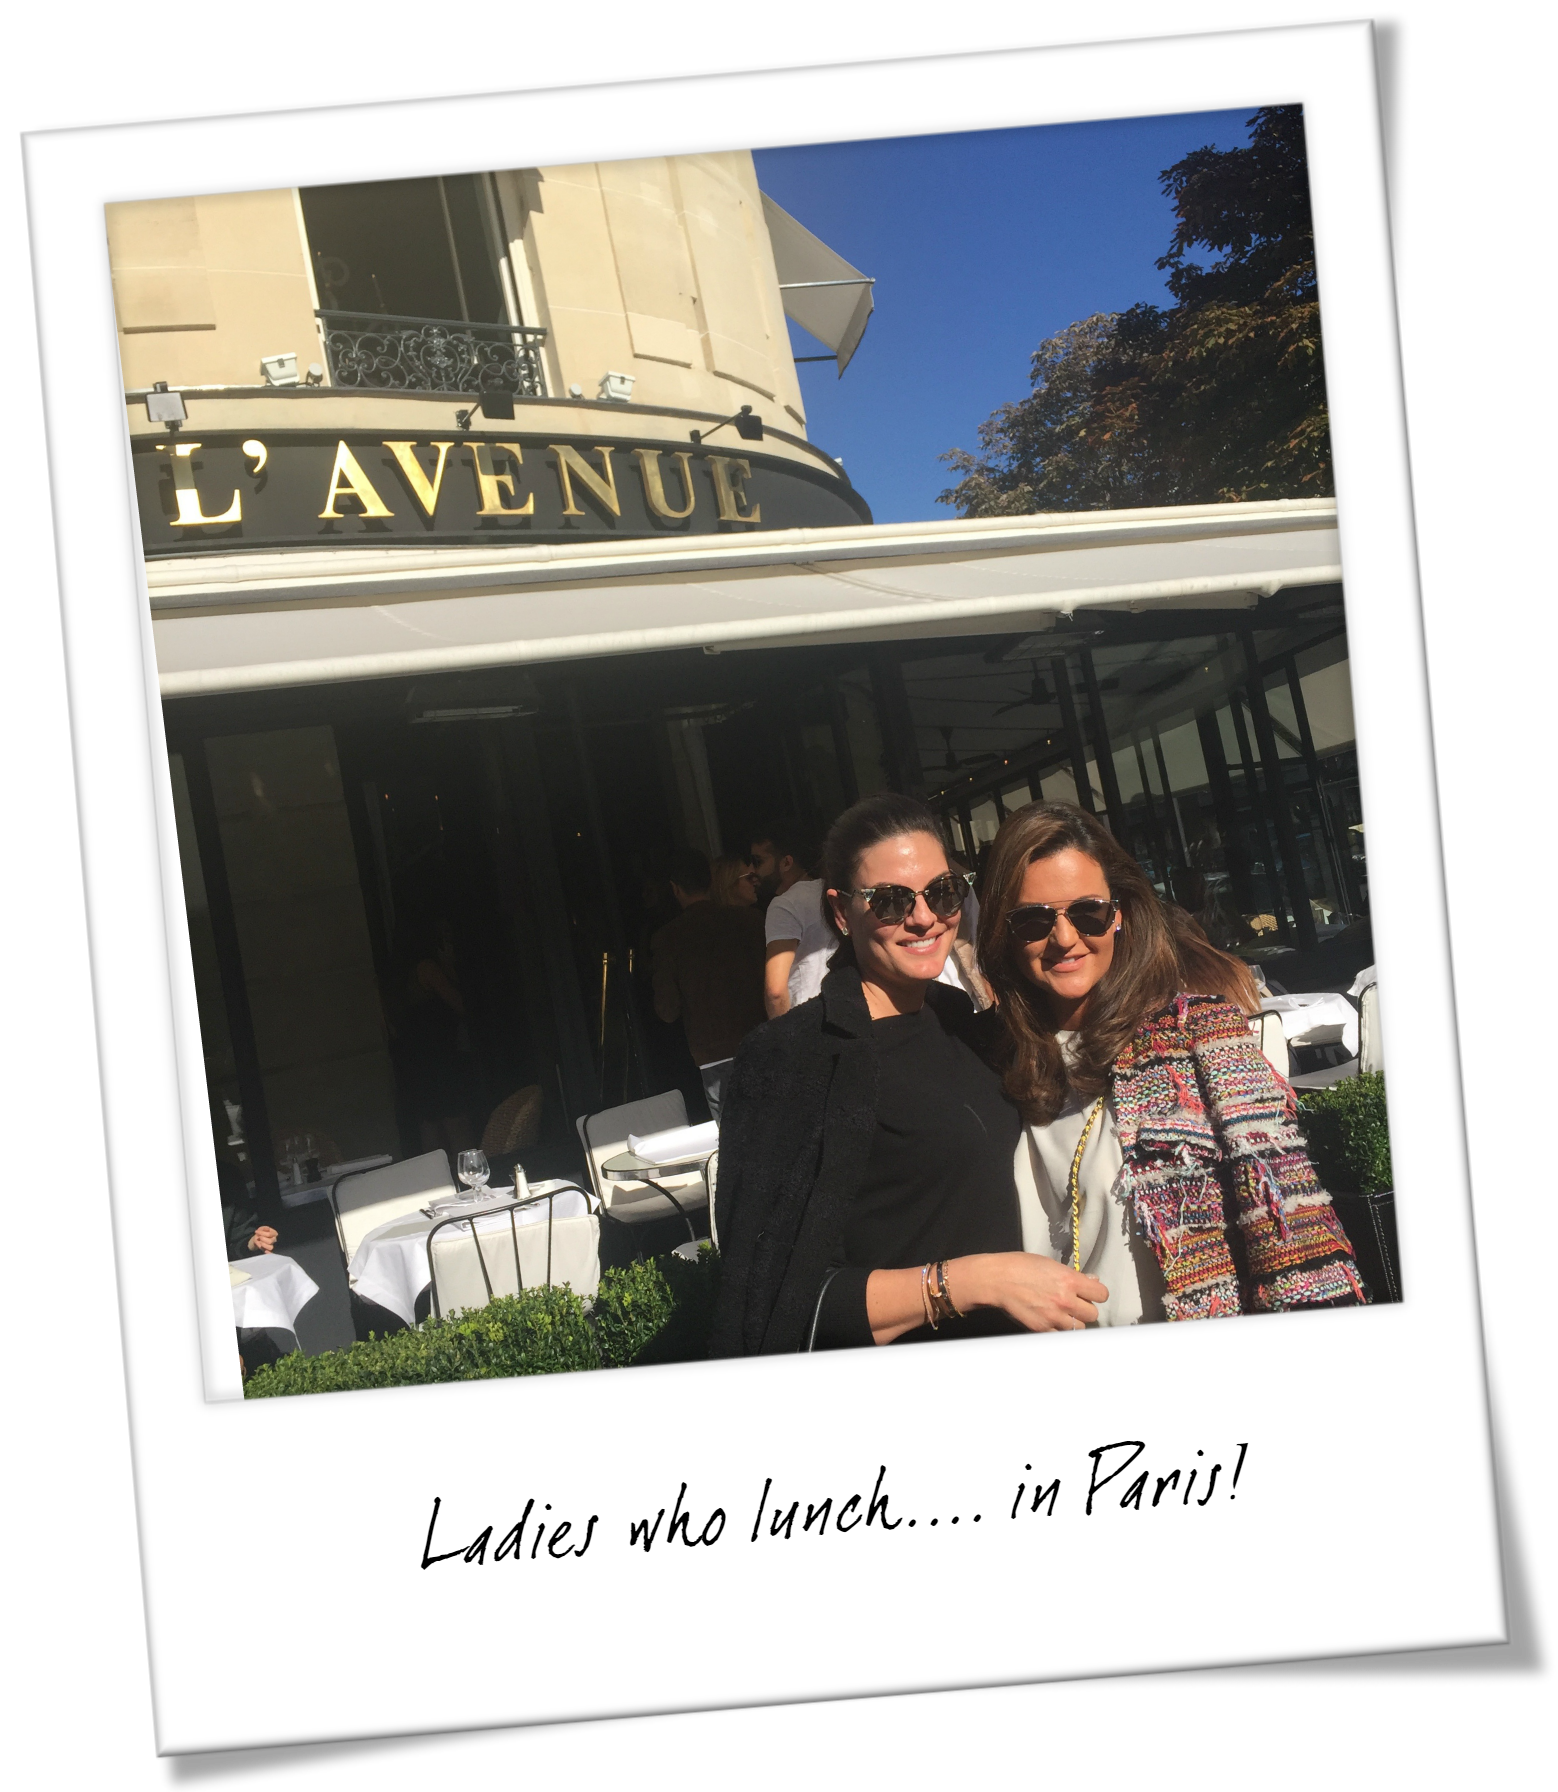 The Best Places to Have Lunch in Paris, France